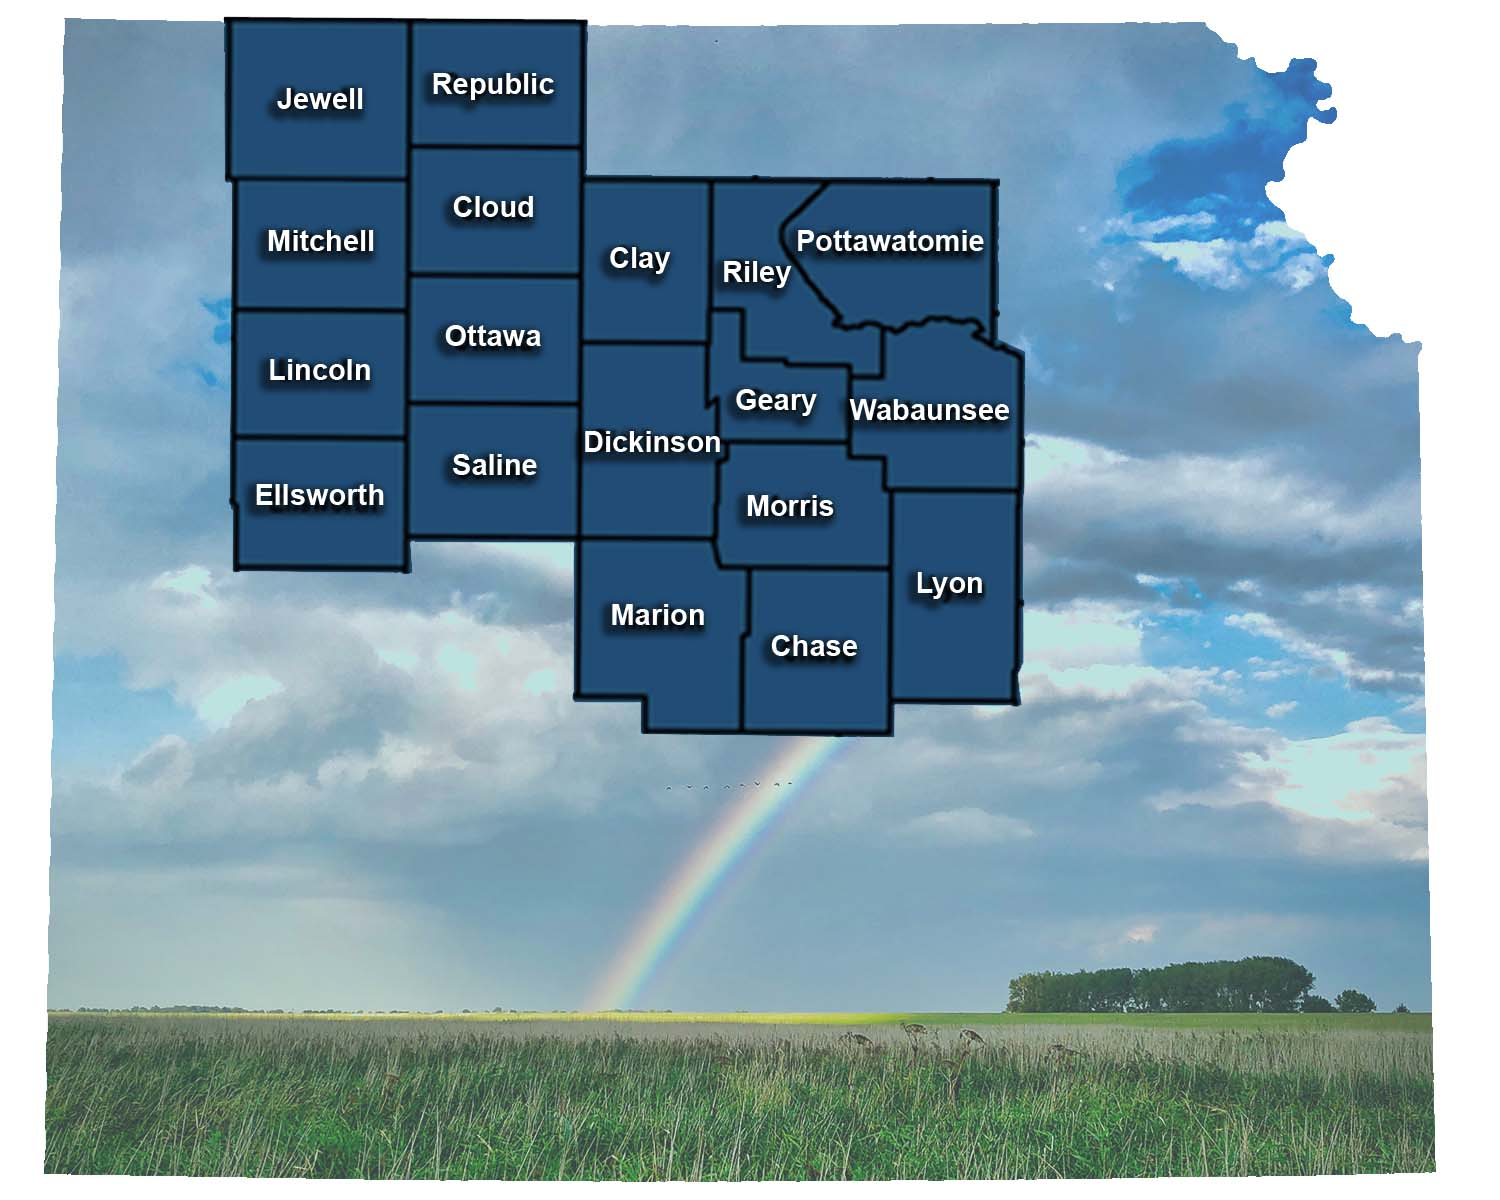 Proudly Serving: - Chase, Clay, Cloud, Dickenson, EllsworthGeary, Jewell, Lincoln, Lyon, Marion, MitchellMorris, Ottawa, Pottawatomie, RepublicRiley, Saline and Wabunsee countiesFind the services available in your county!